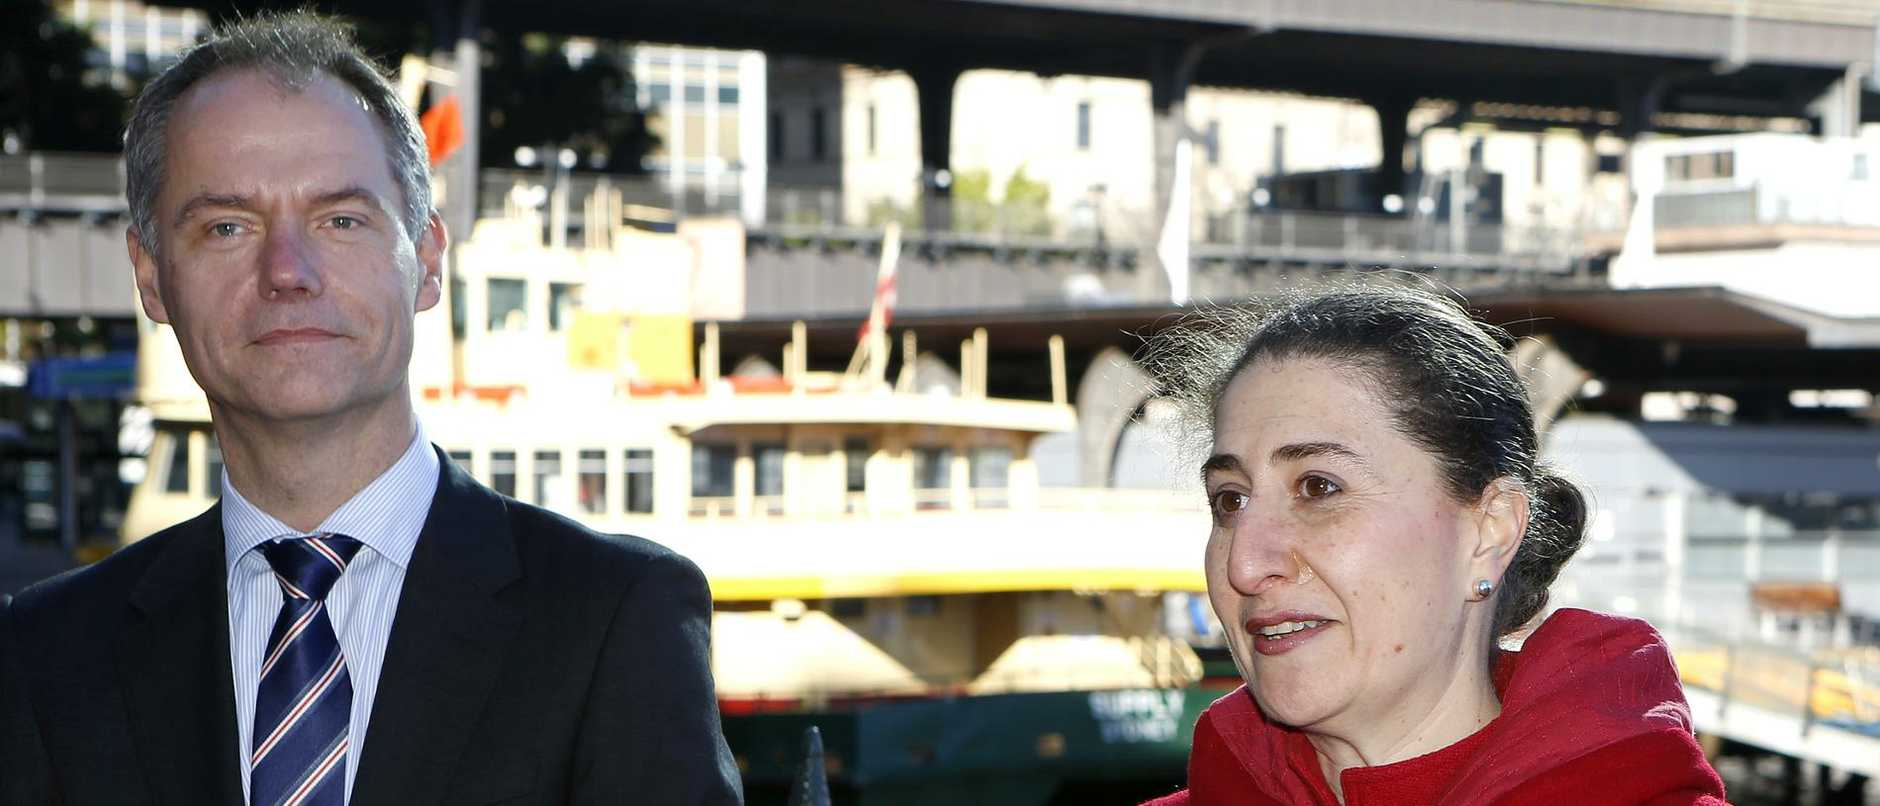 (L-R) Steffen Faurby, Gladys Berejiklian and Barry O'Farrell. Sydney Ferries is now under new private ownership. Harbour city ferries is a joint partnership between leading transport operators Transfield Services and Veolia Transdev Australia. Today is the first day of operation. Pic: Mitch Cameron